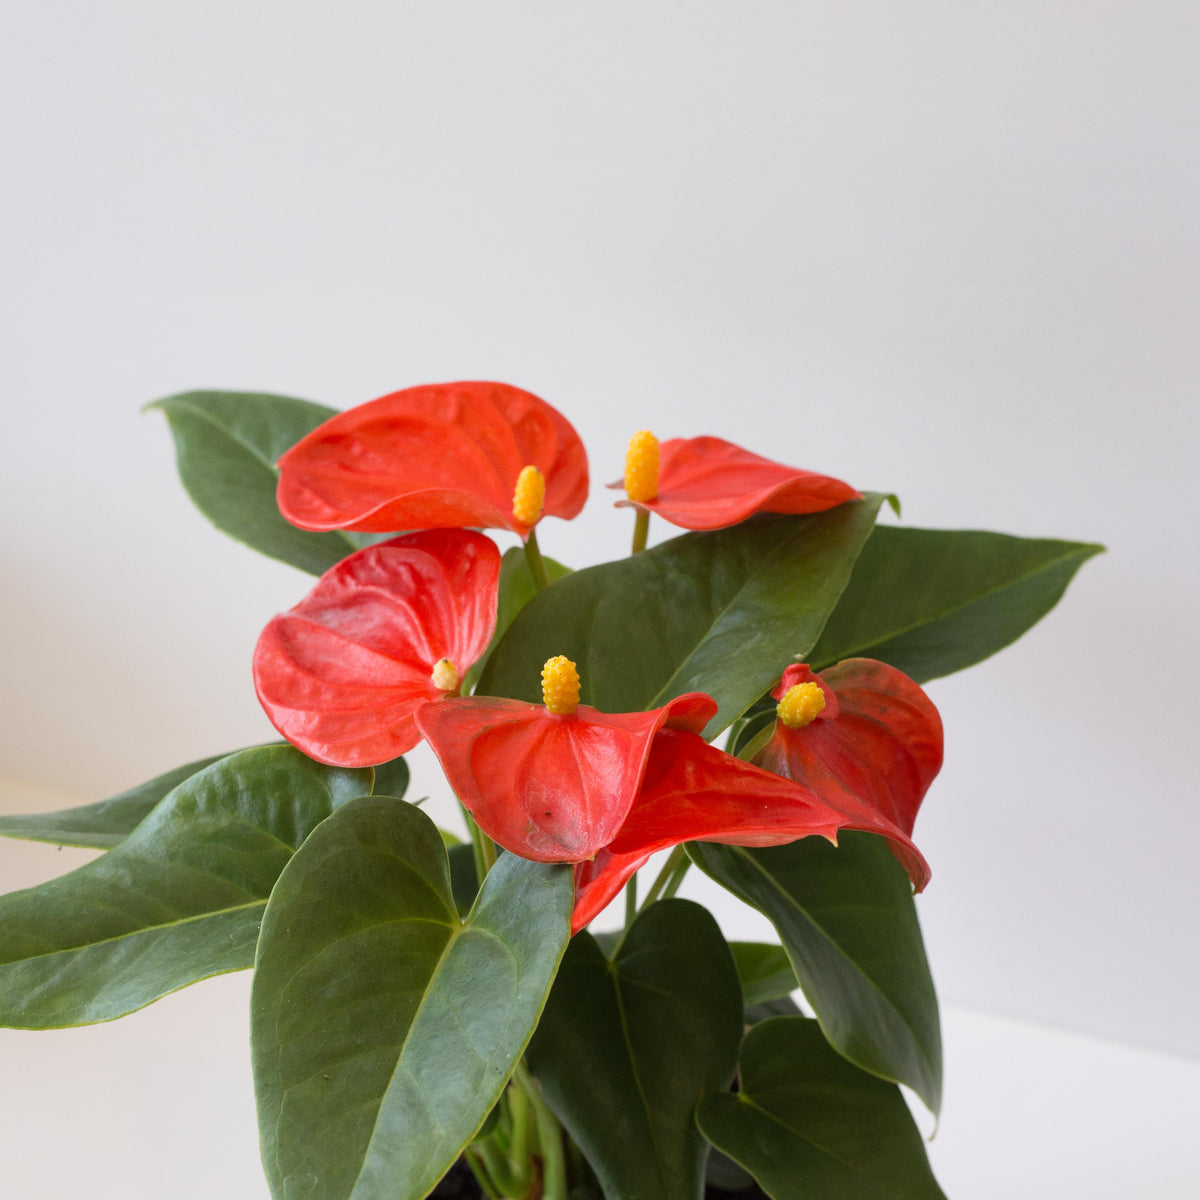 Anthurium scherzeanum 'Solara Orange' - Orange Flamingo Flower 4""